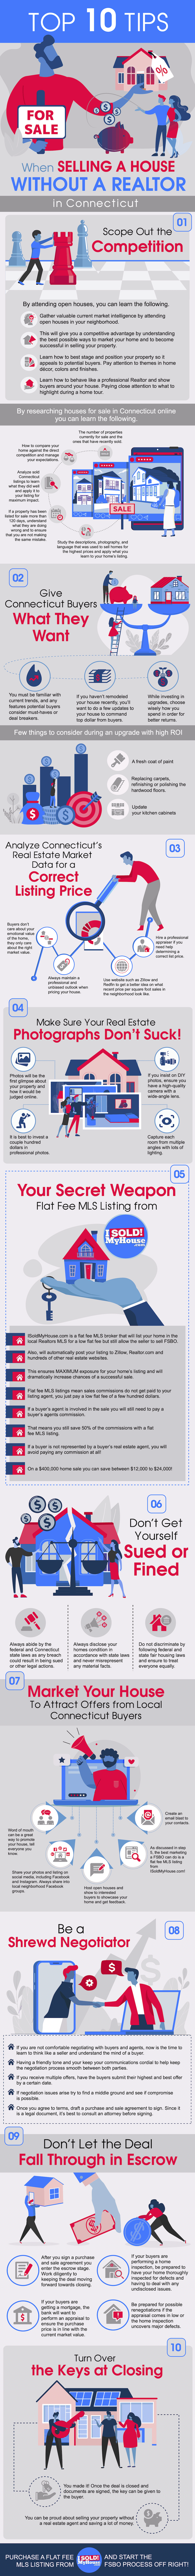 infographic of the 10 steps to sell a house in connecticut without an agent